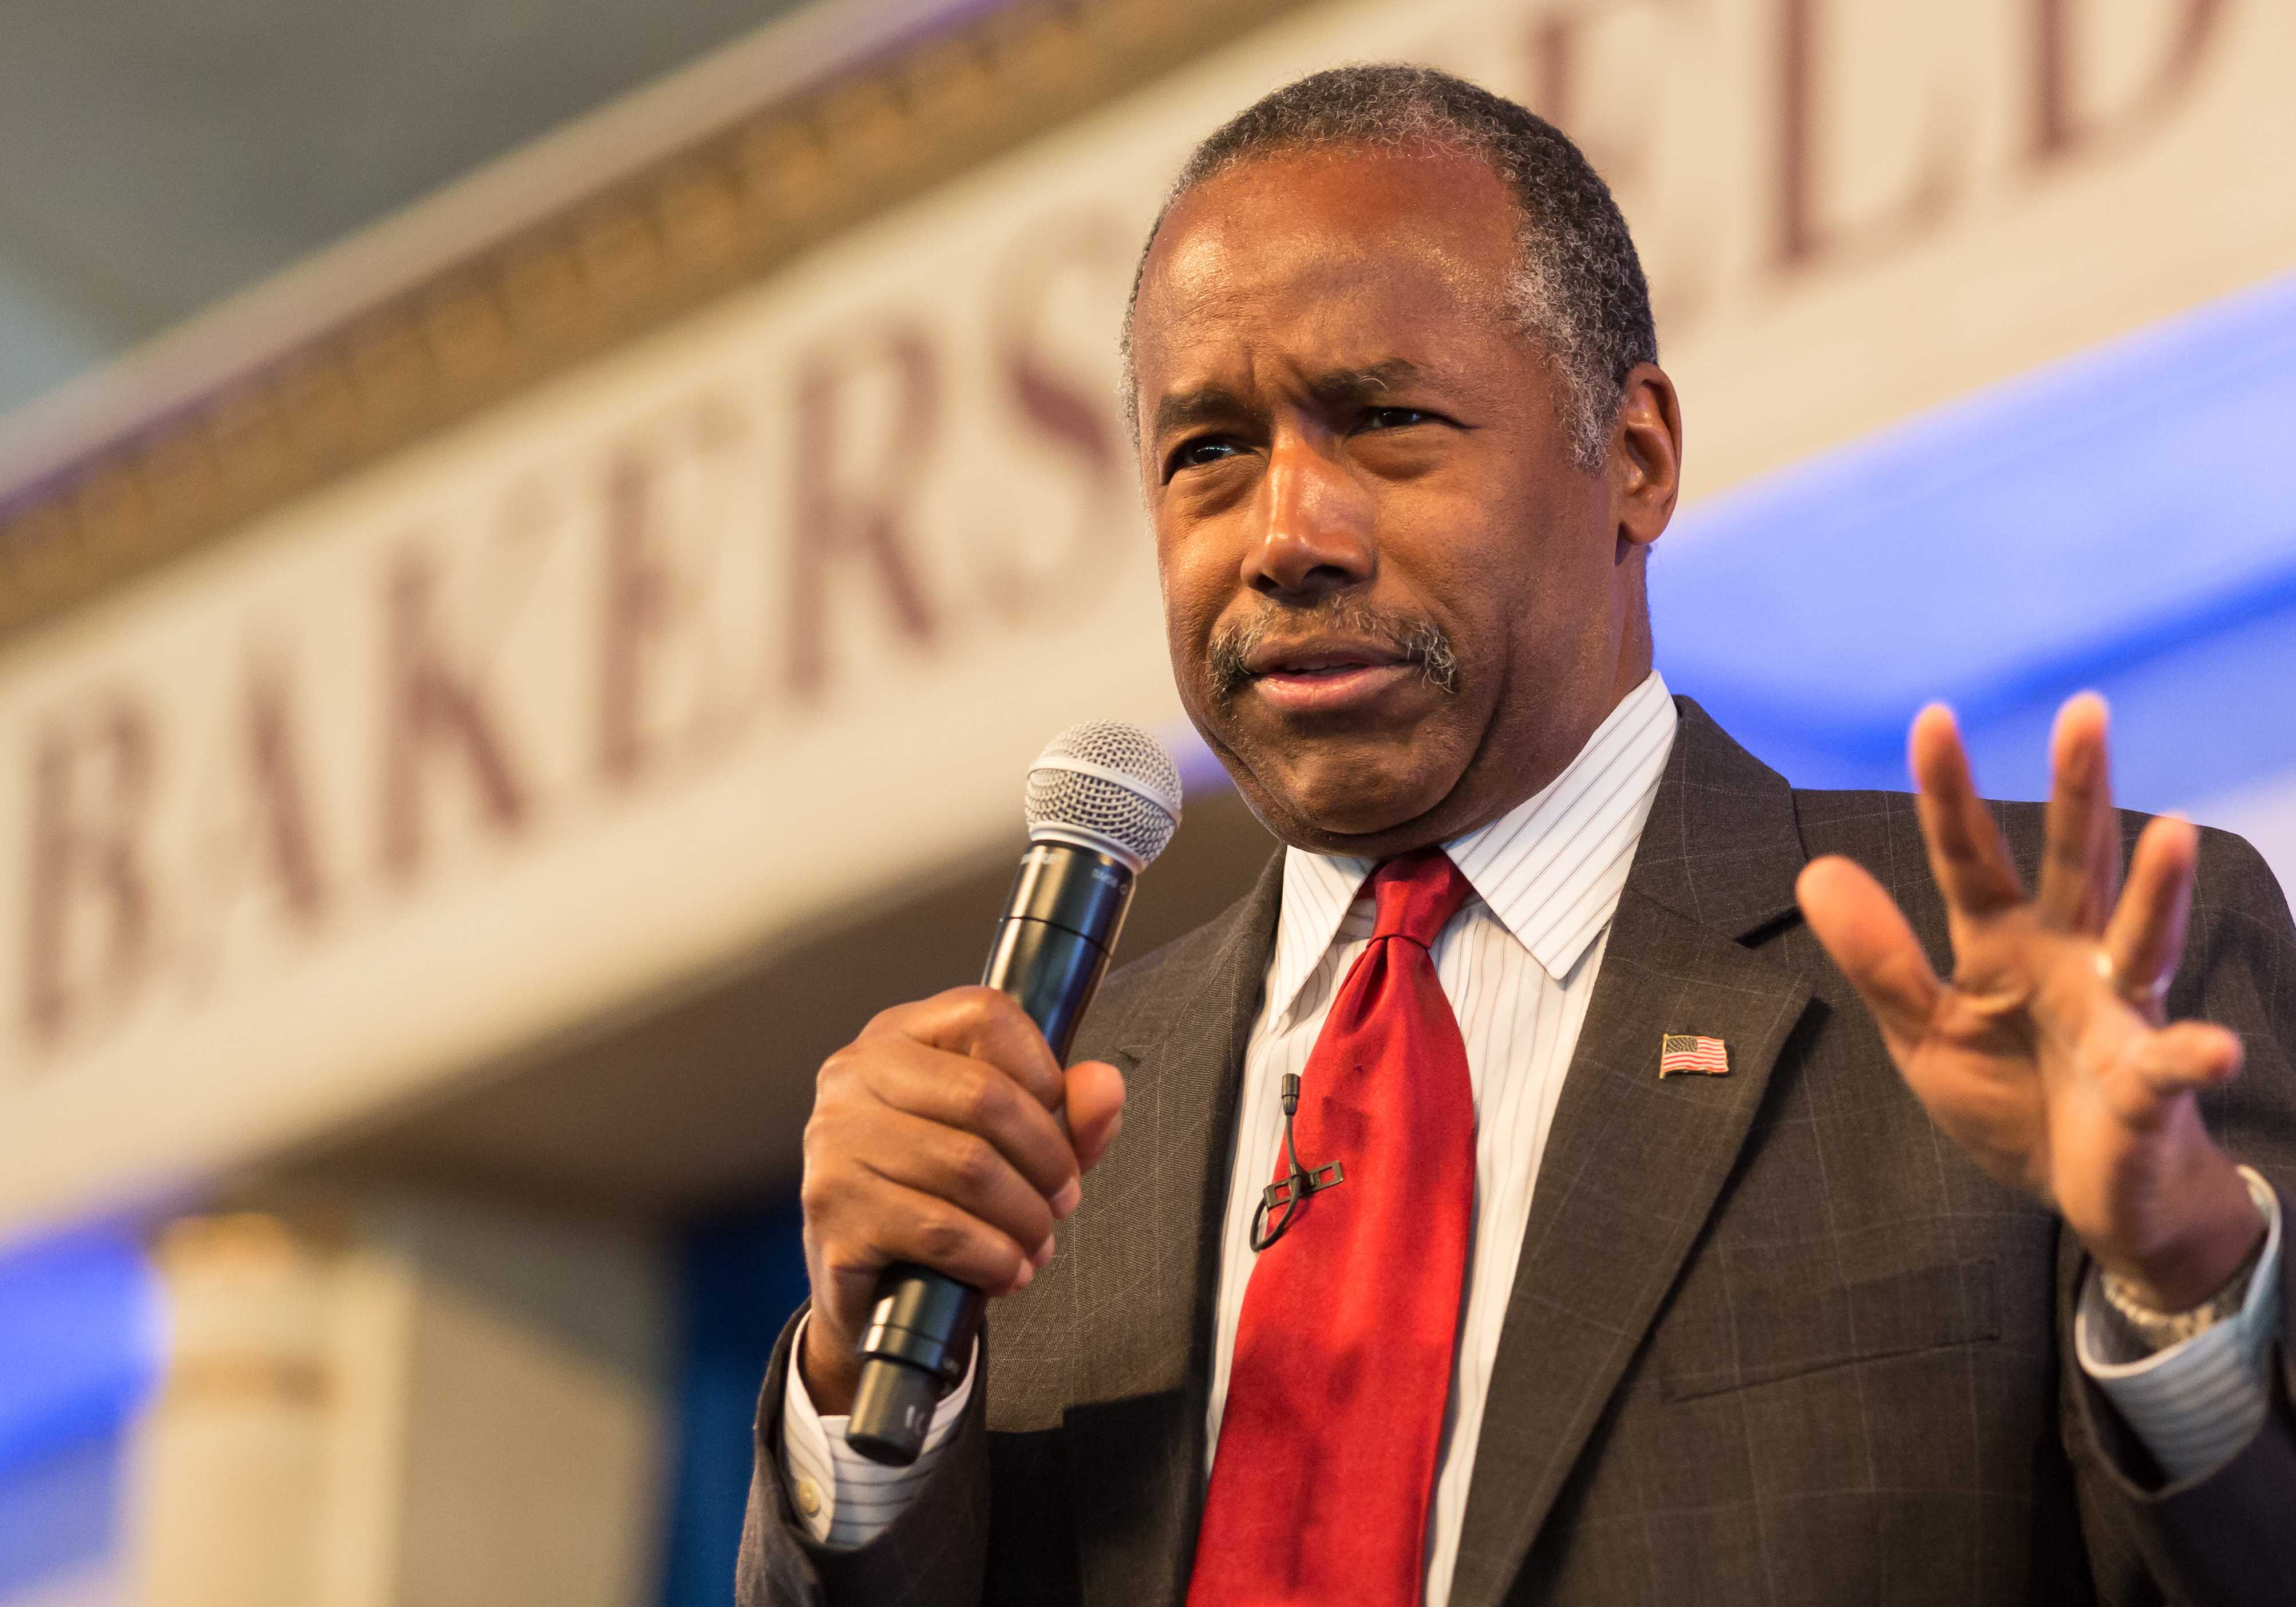 Carson talks politics at business conference